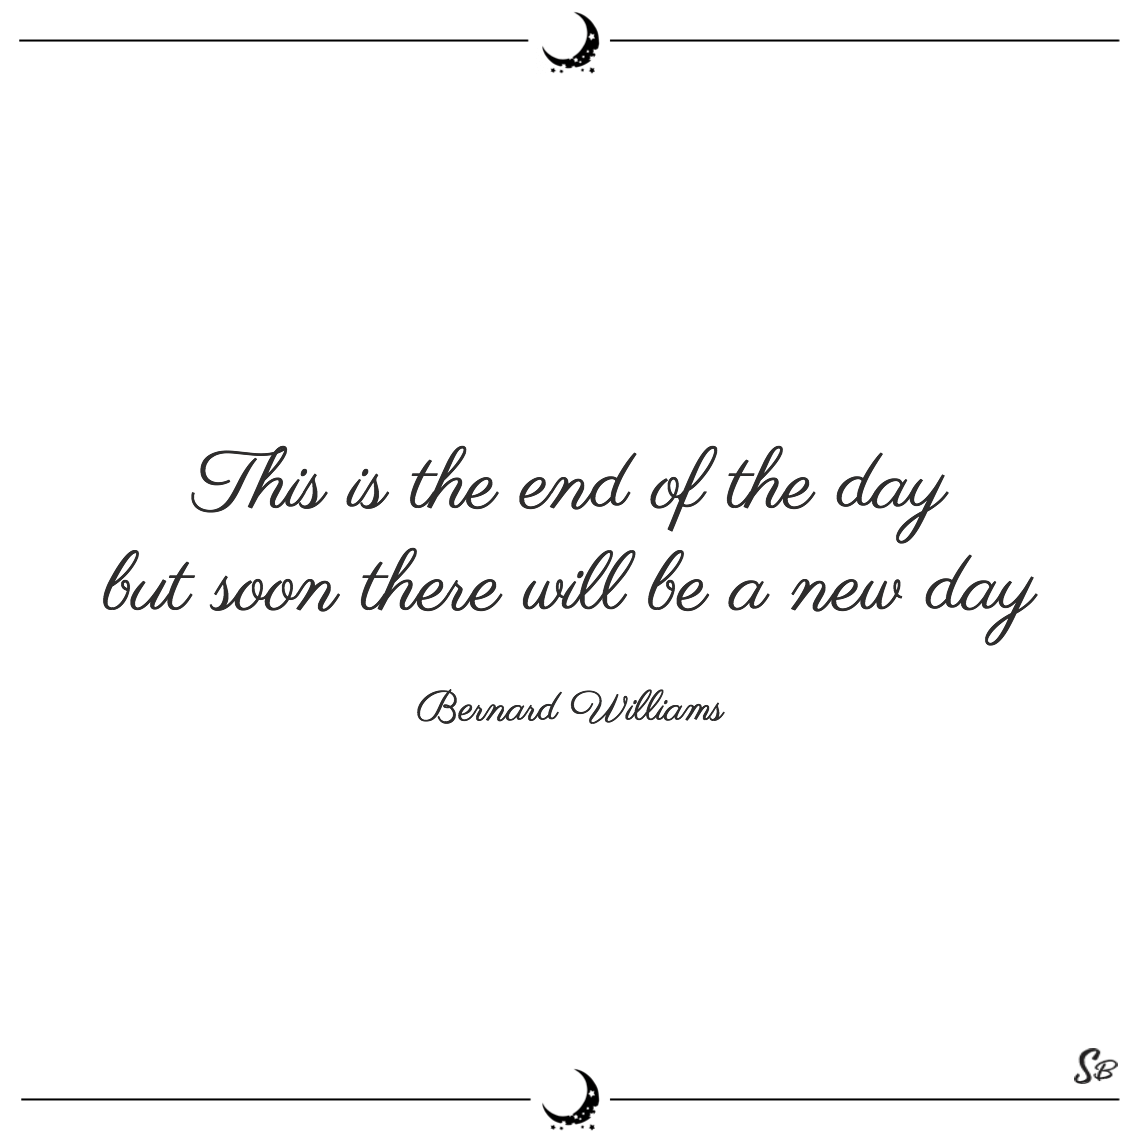 This is the end of the day but soon there will be a new day bernard williams